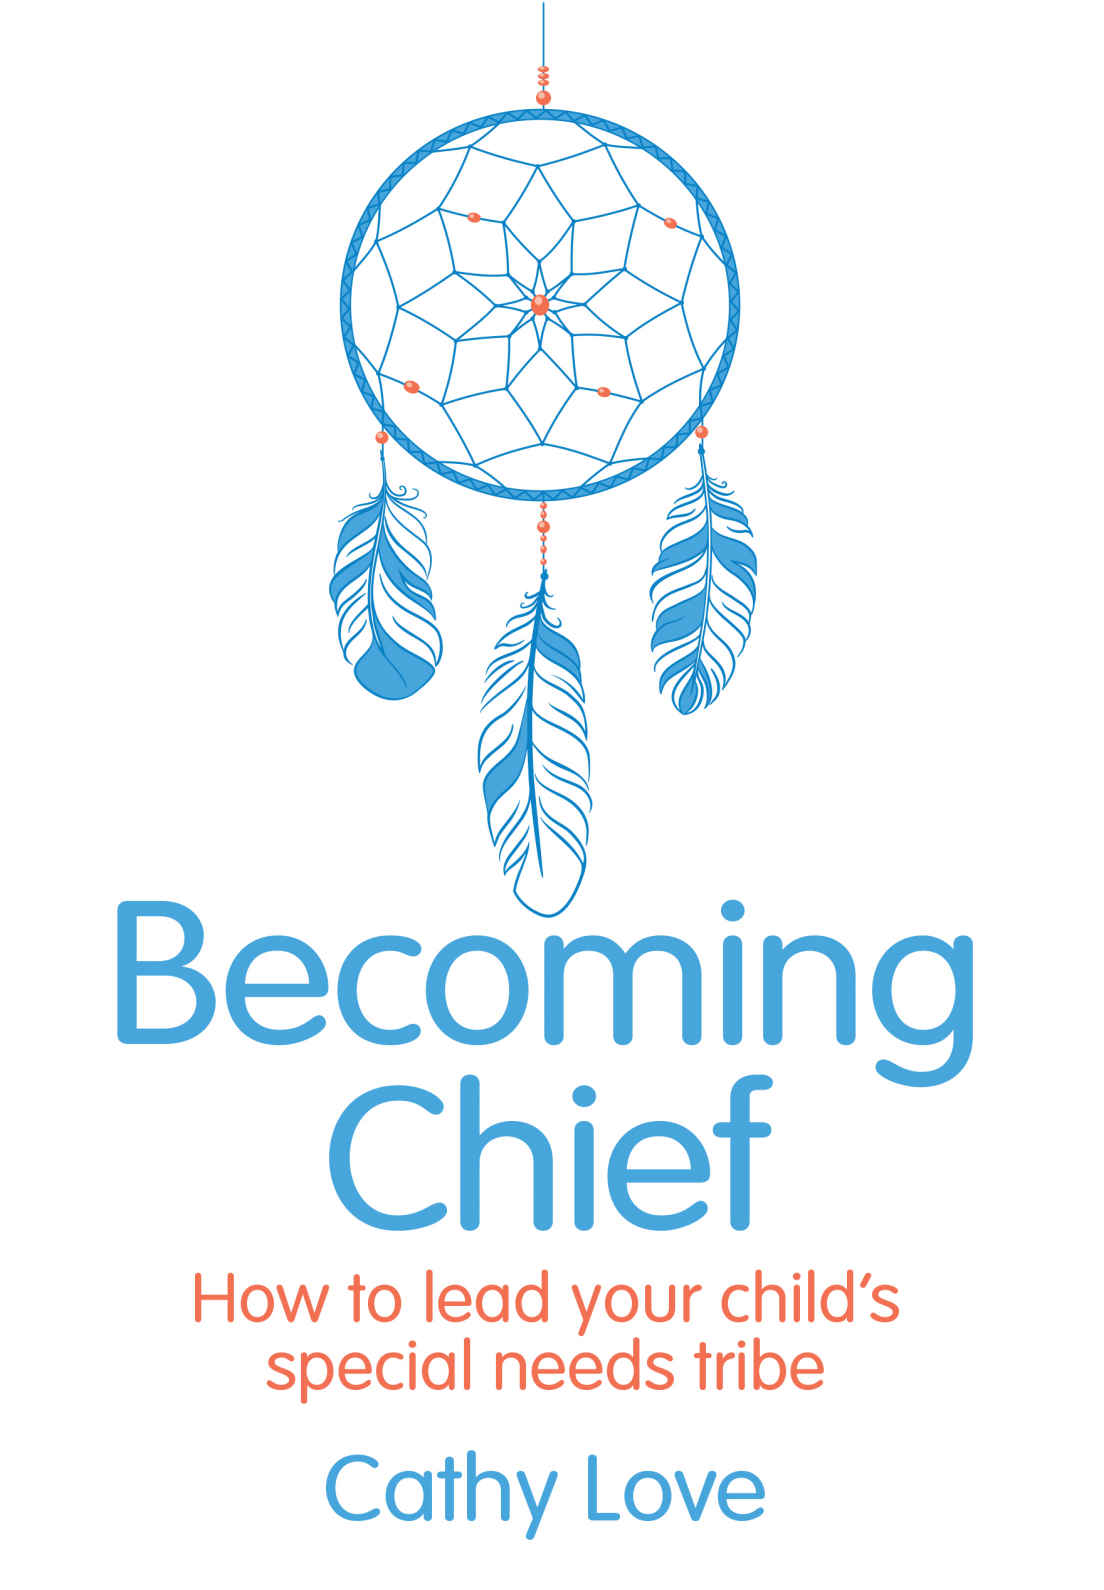 Cathy-Love-Becoming-Chief.jpeg